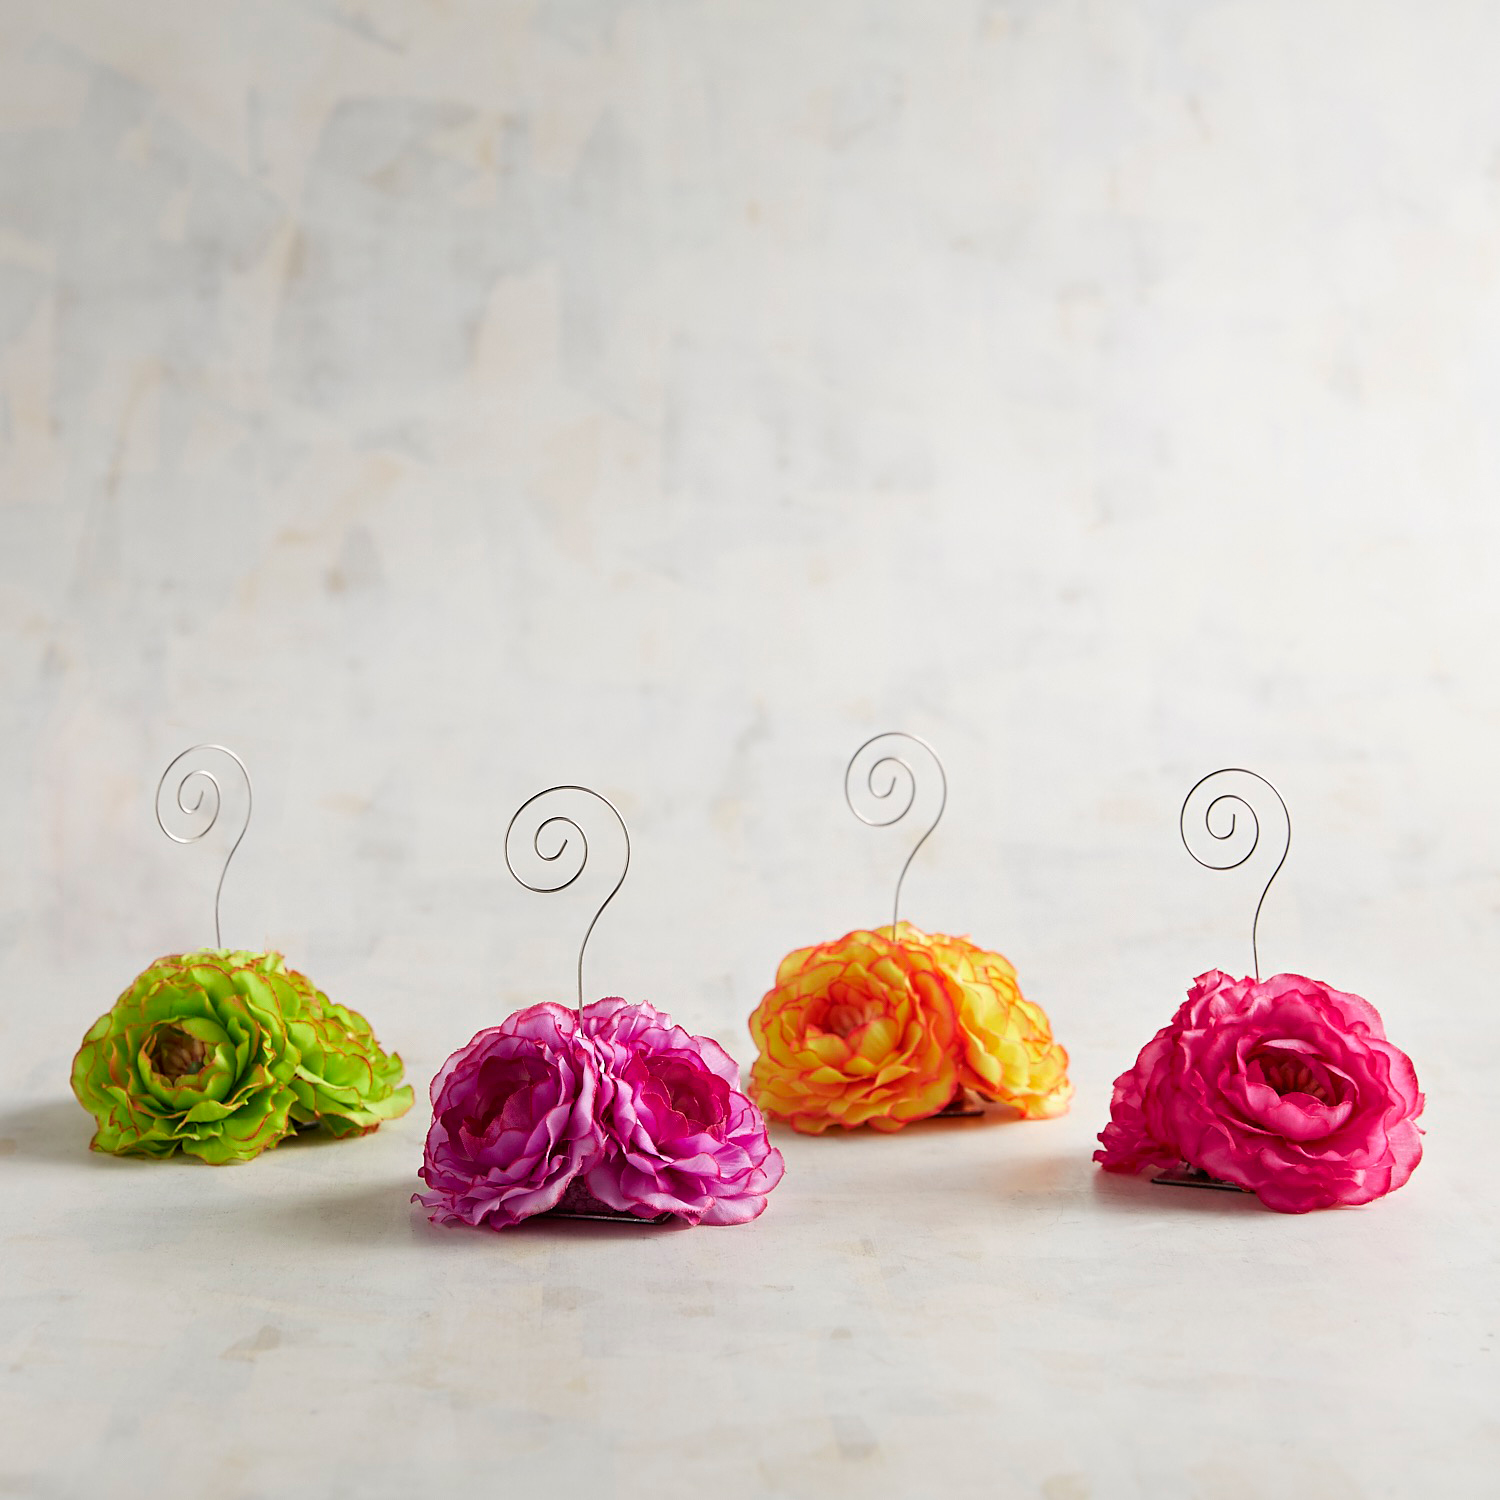 Faux Floral Place Card Holders, Set of 4